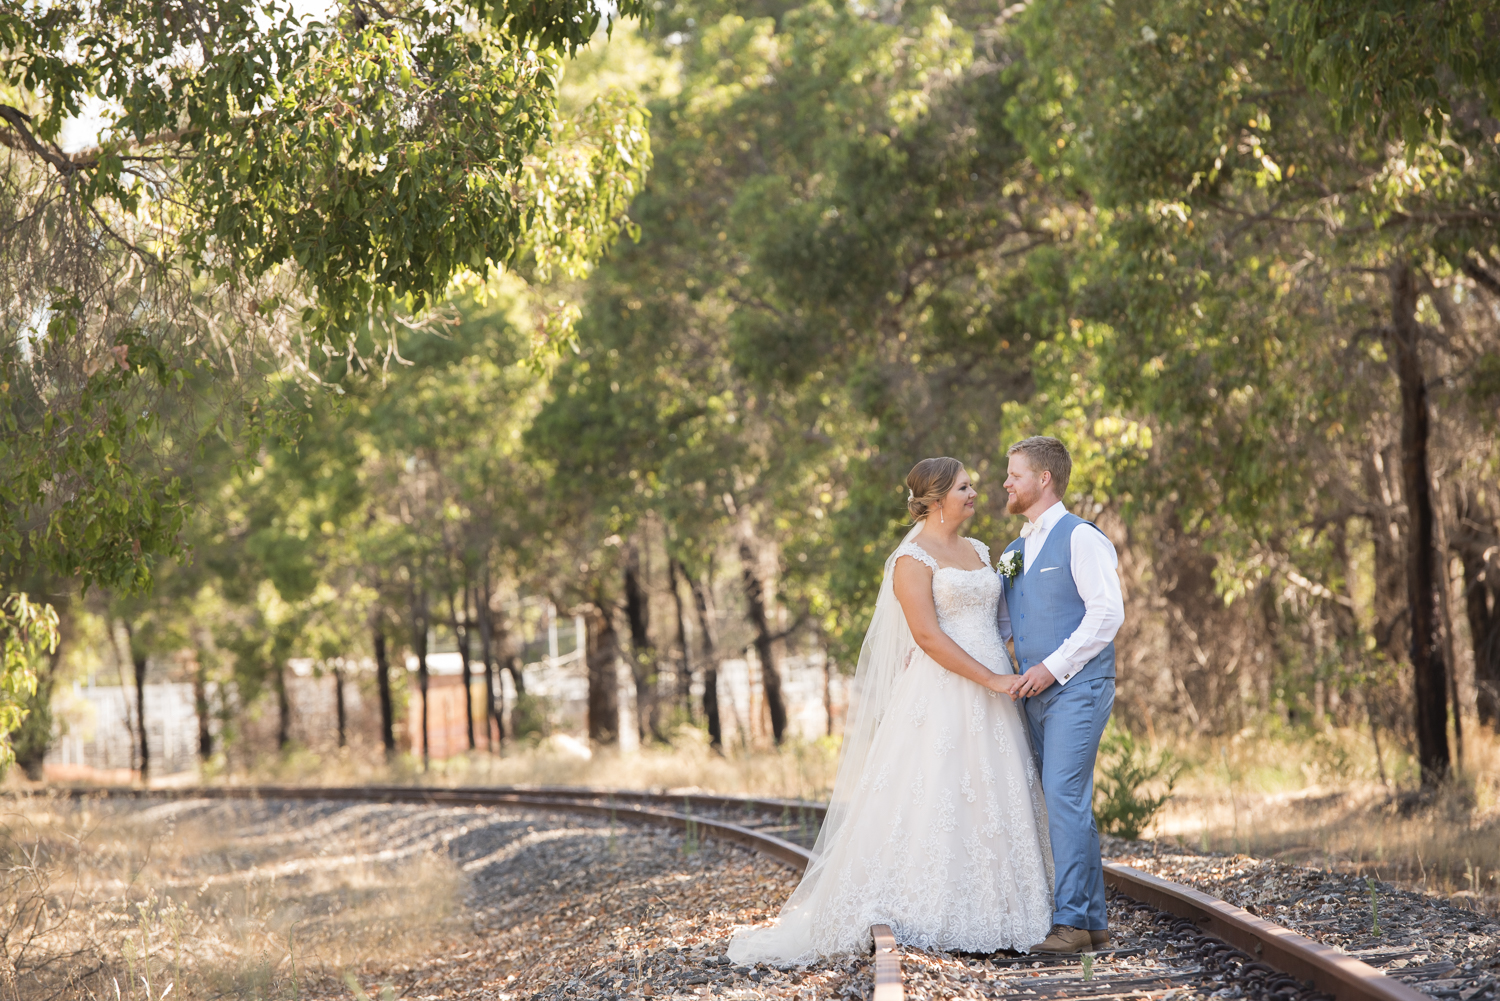 Barton Jones Winery Donnybrook Boyanup Wedding Photographer-35.jpg